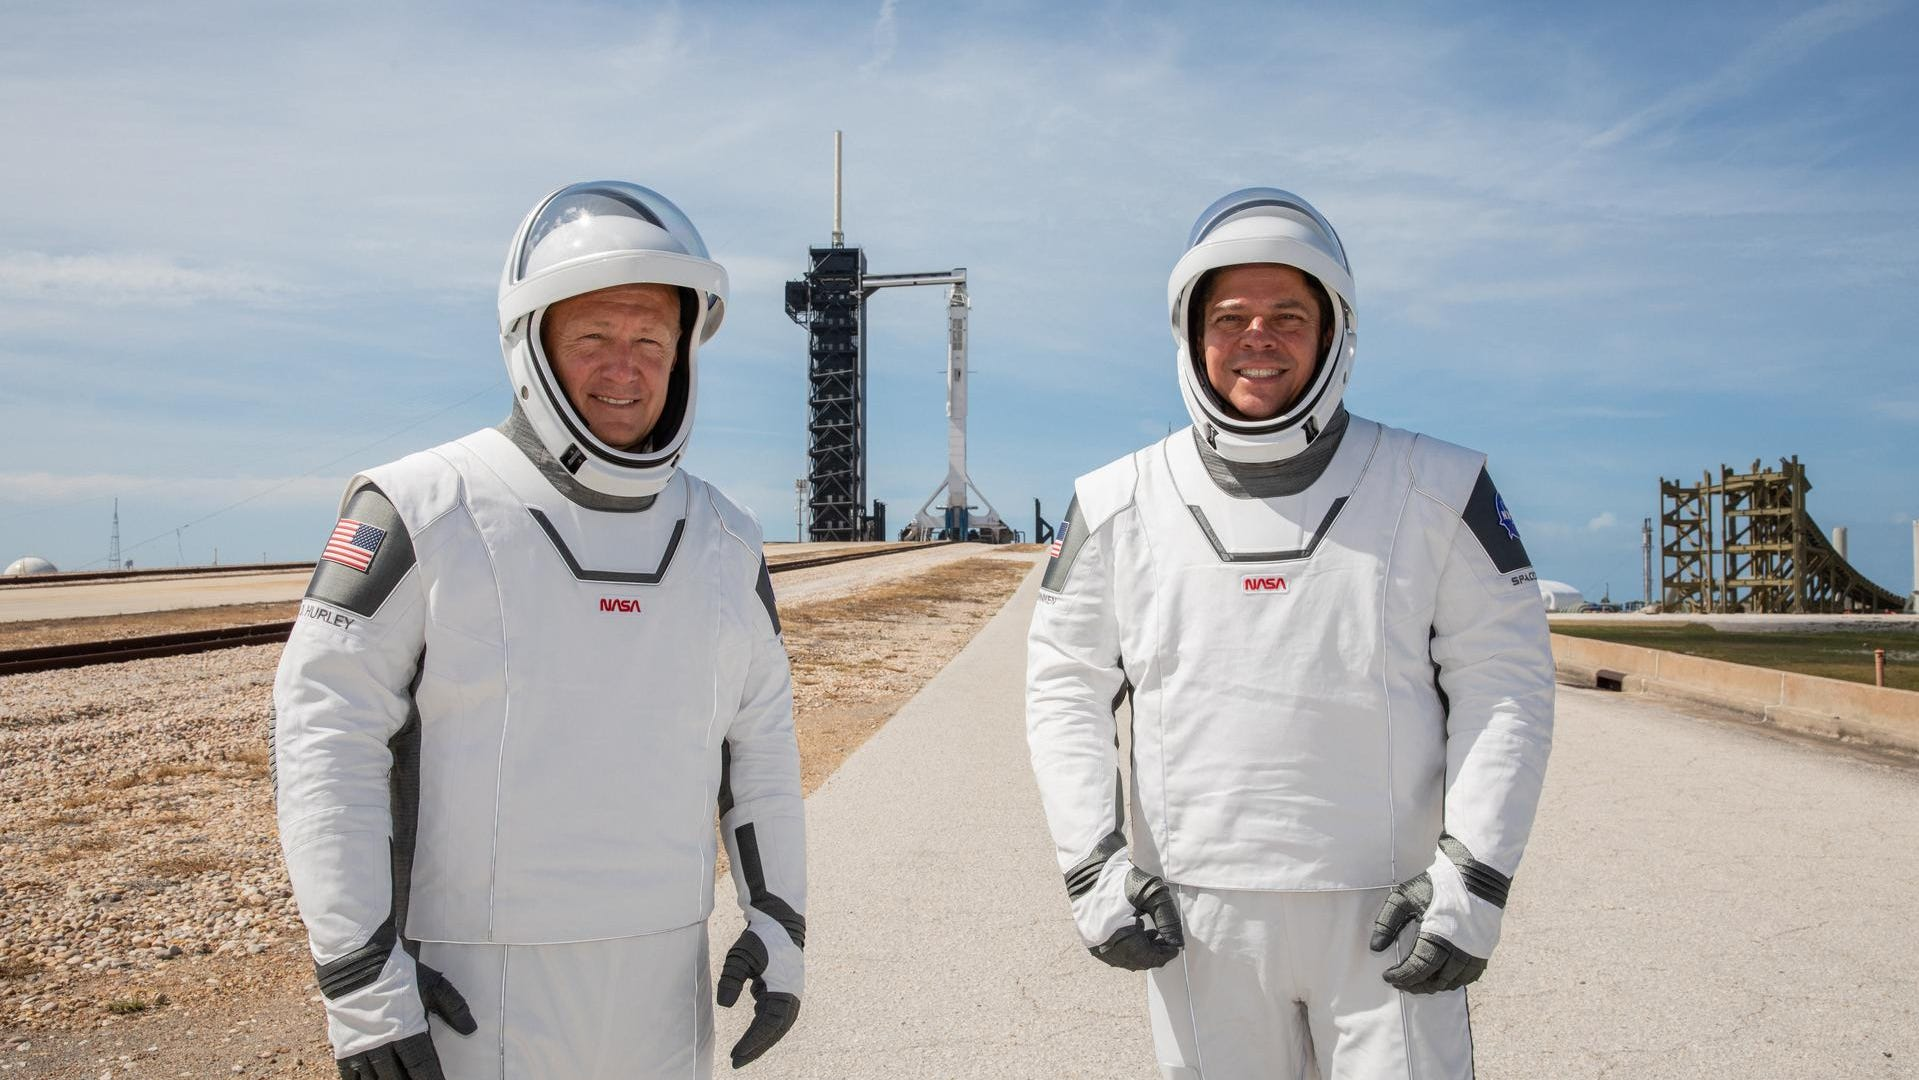 NASA astronauts Bob Behnken and Doug Hurley perfor